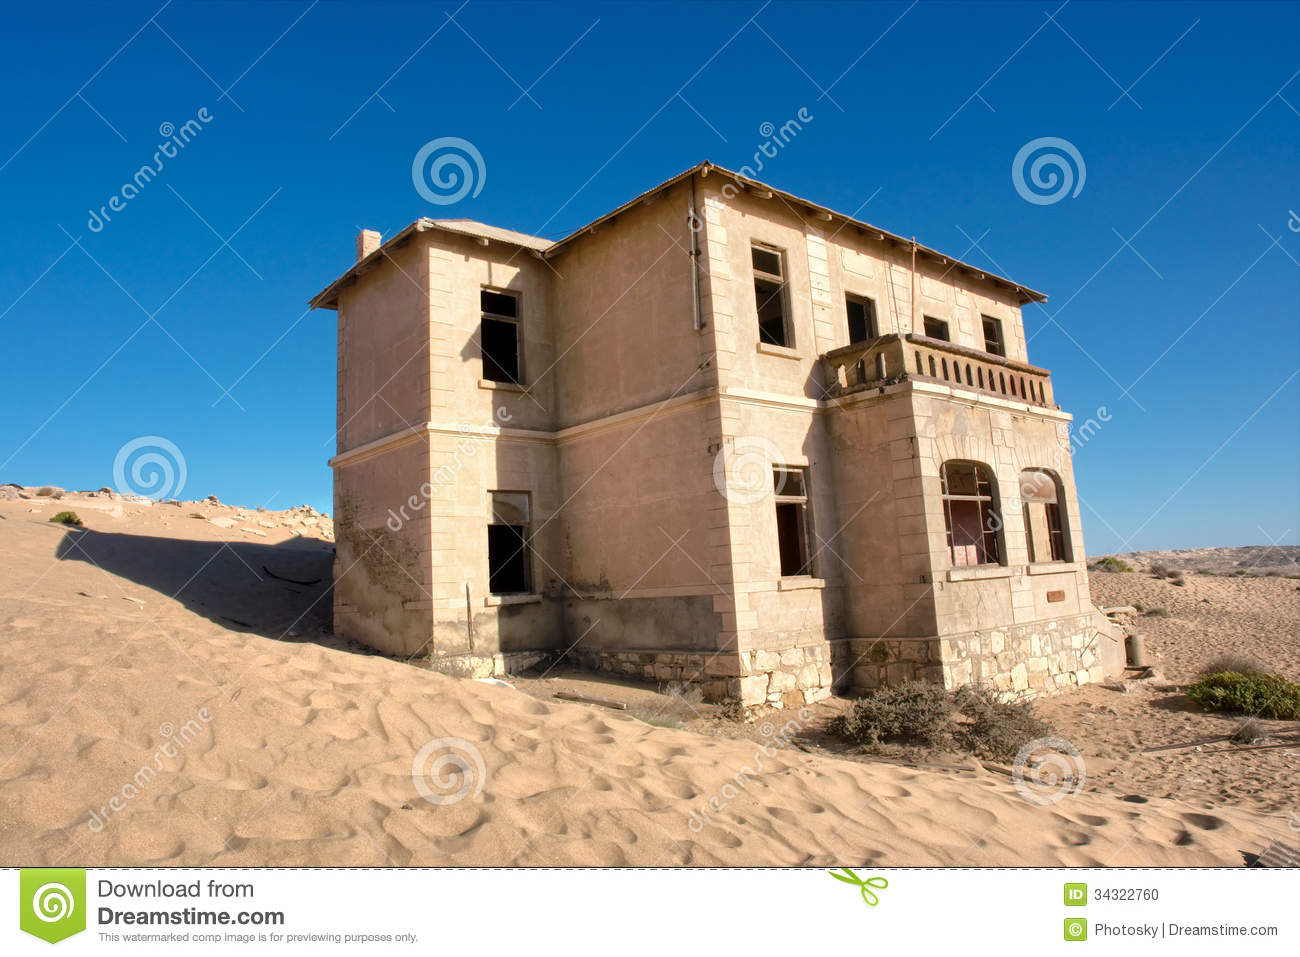 Abandoned House In Sand Stock Photo.